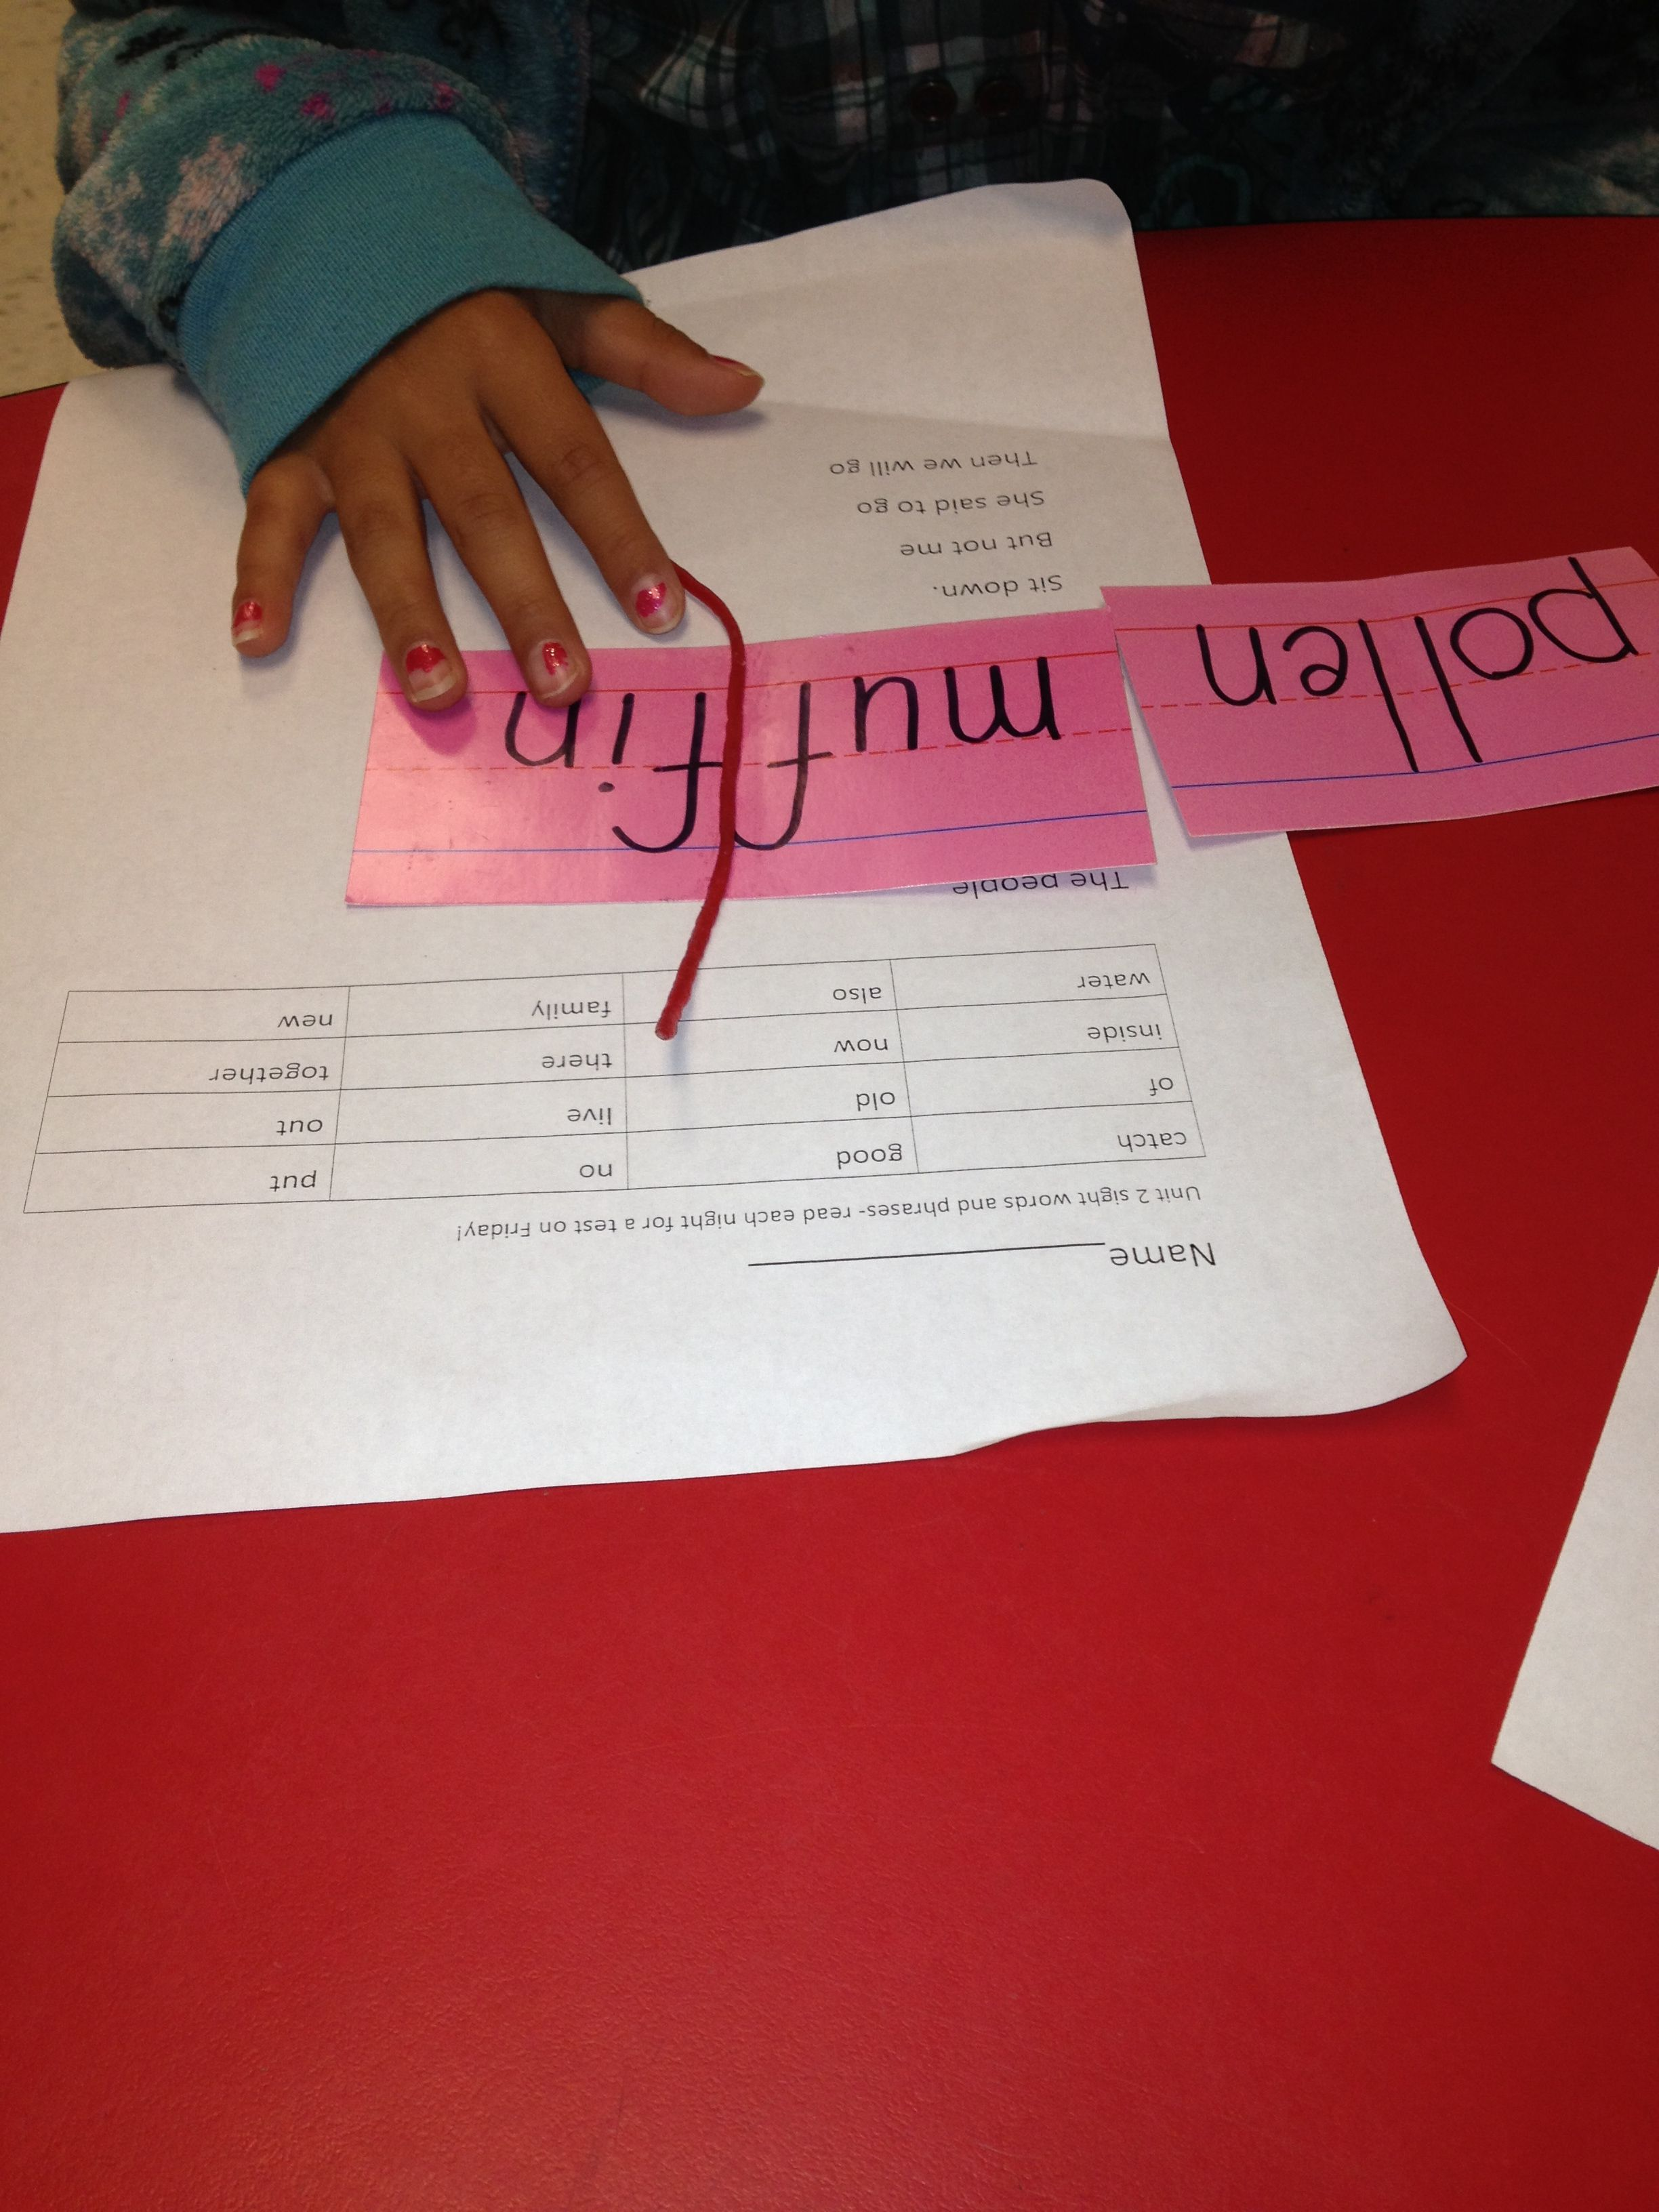 Syllable patterns vccv worksheet education com - Vccv Pattern Give Each Group A Few Words And Have Them Separate Using Pipe Cleaner